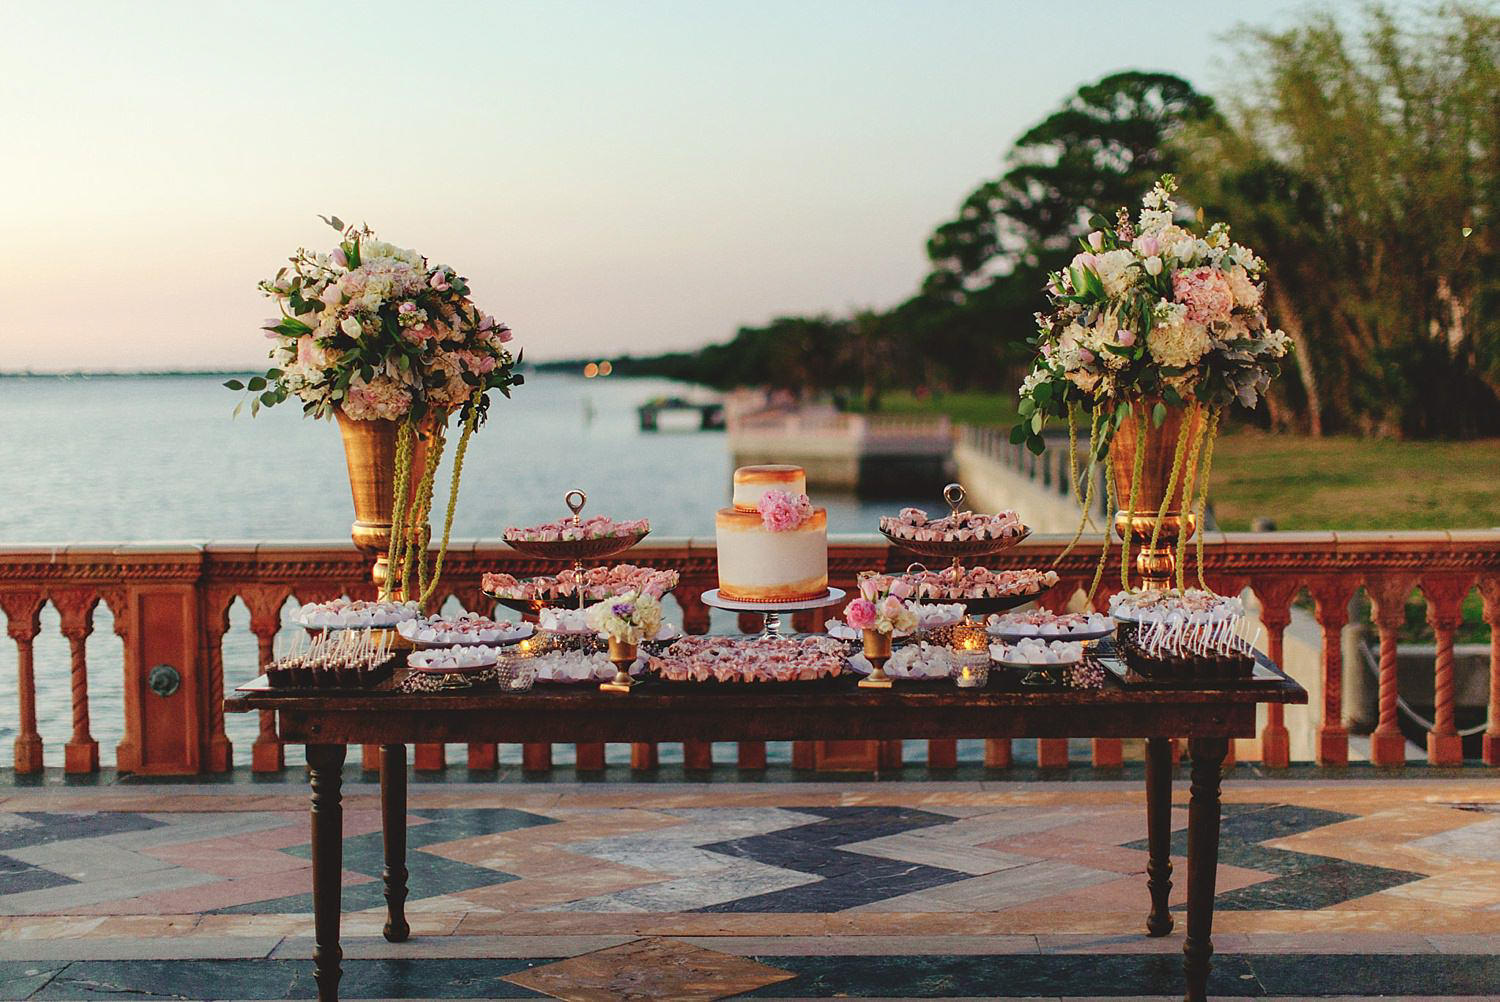 editorial ringling wedding: cake table with desserts